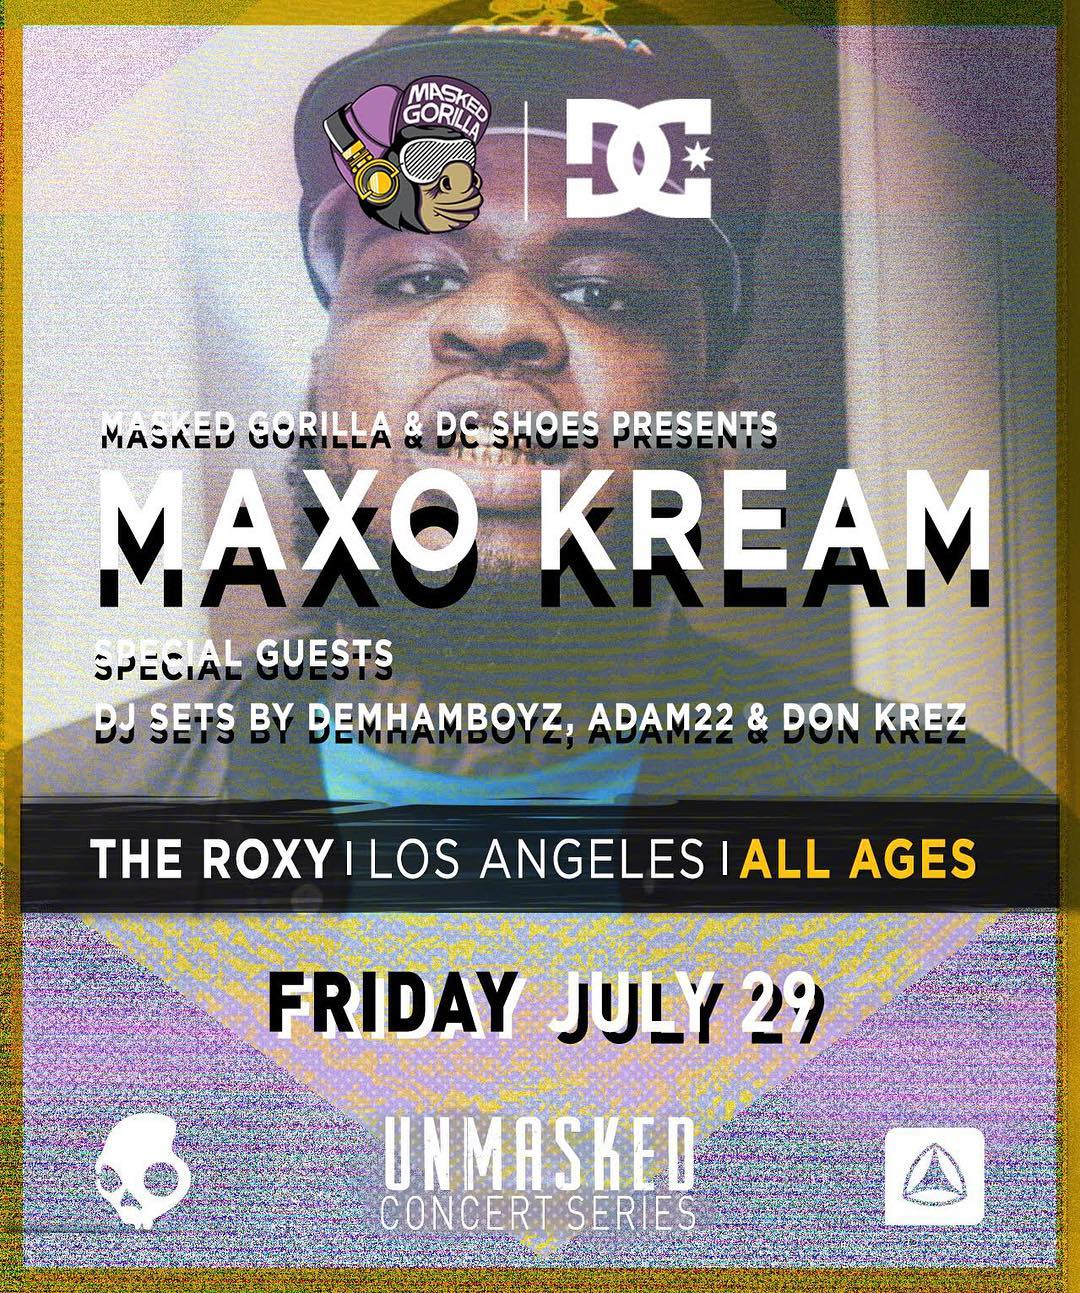 Mark your calendars the next @maskedgorilla x DC @unmaskedla concert is July 29th at @theroxy Los Angeles, CA. It's going to be a crazy show with Houston rapper @MaxoKream. Get your tickets today at: UNMASKED.la. #dcshoes